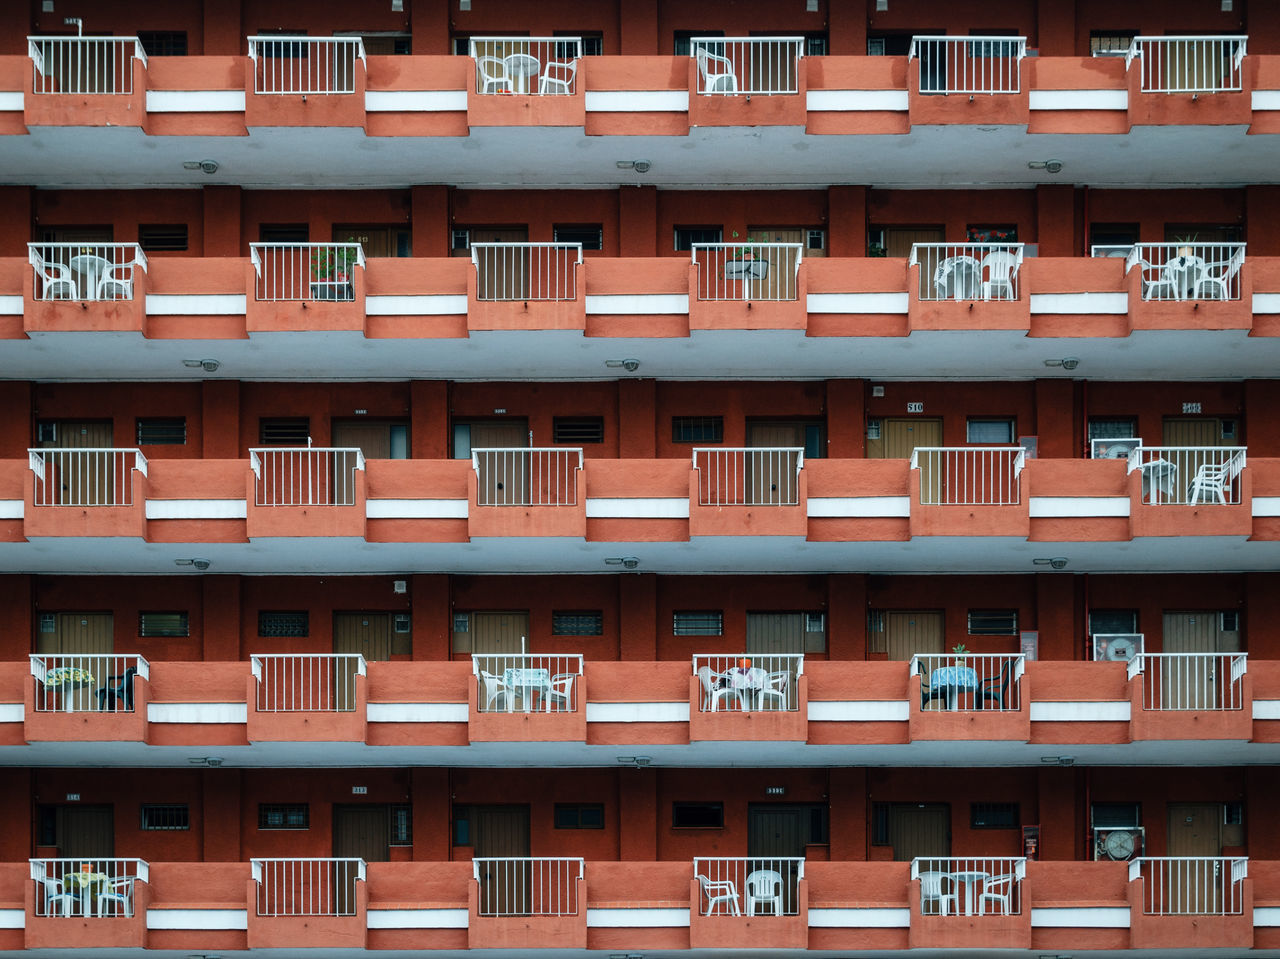 Texture of multistorey apartment house wall with balconies and windows in Puerto de la Cruz, Tenerife, Canary, Spain Apartment Buildings Geometric Shapes apartments Architecture backgrounds balcony building exterior built structure full frame geology hotel no people outdoors window window box